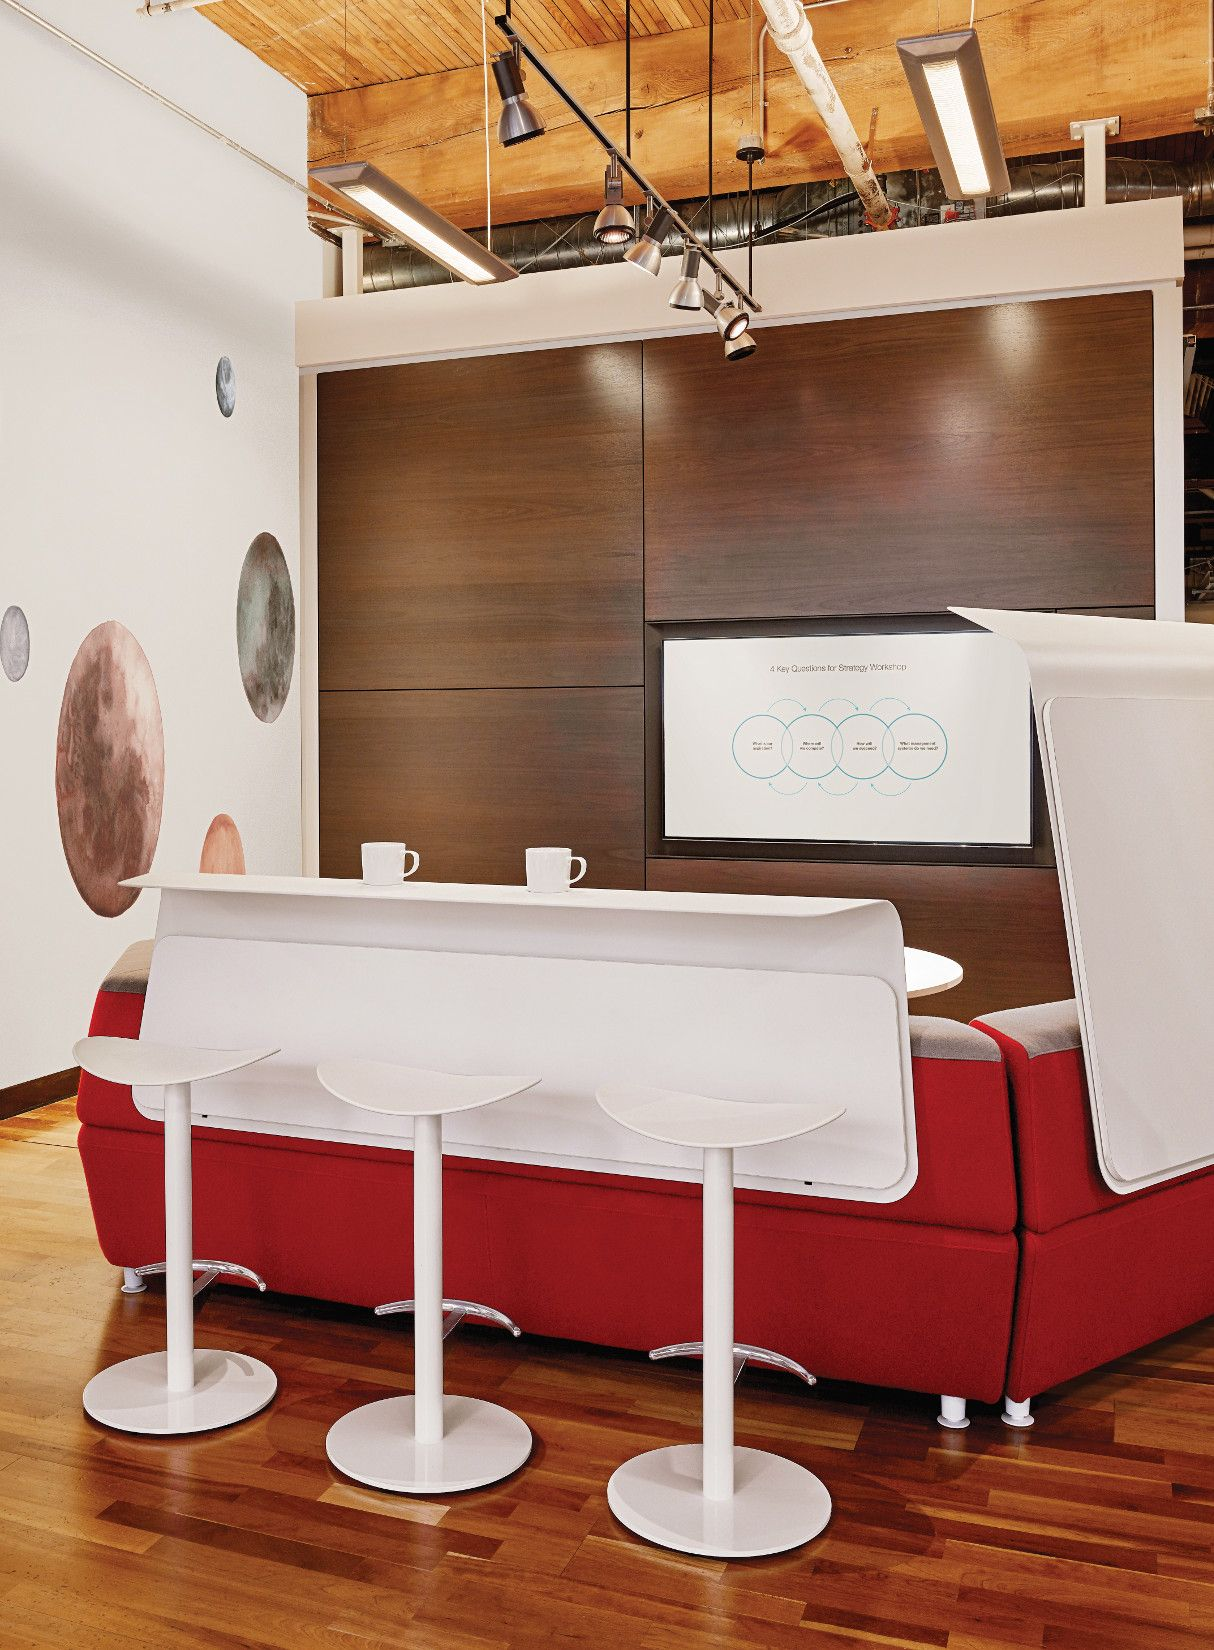 Coalesse Wrapp Chair Tufted Tub Design Inspiration 43 Ideas For Modern Office Workspaces